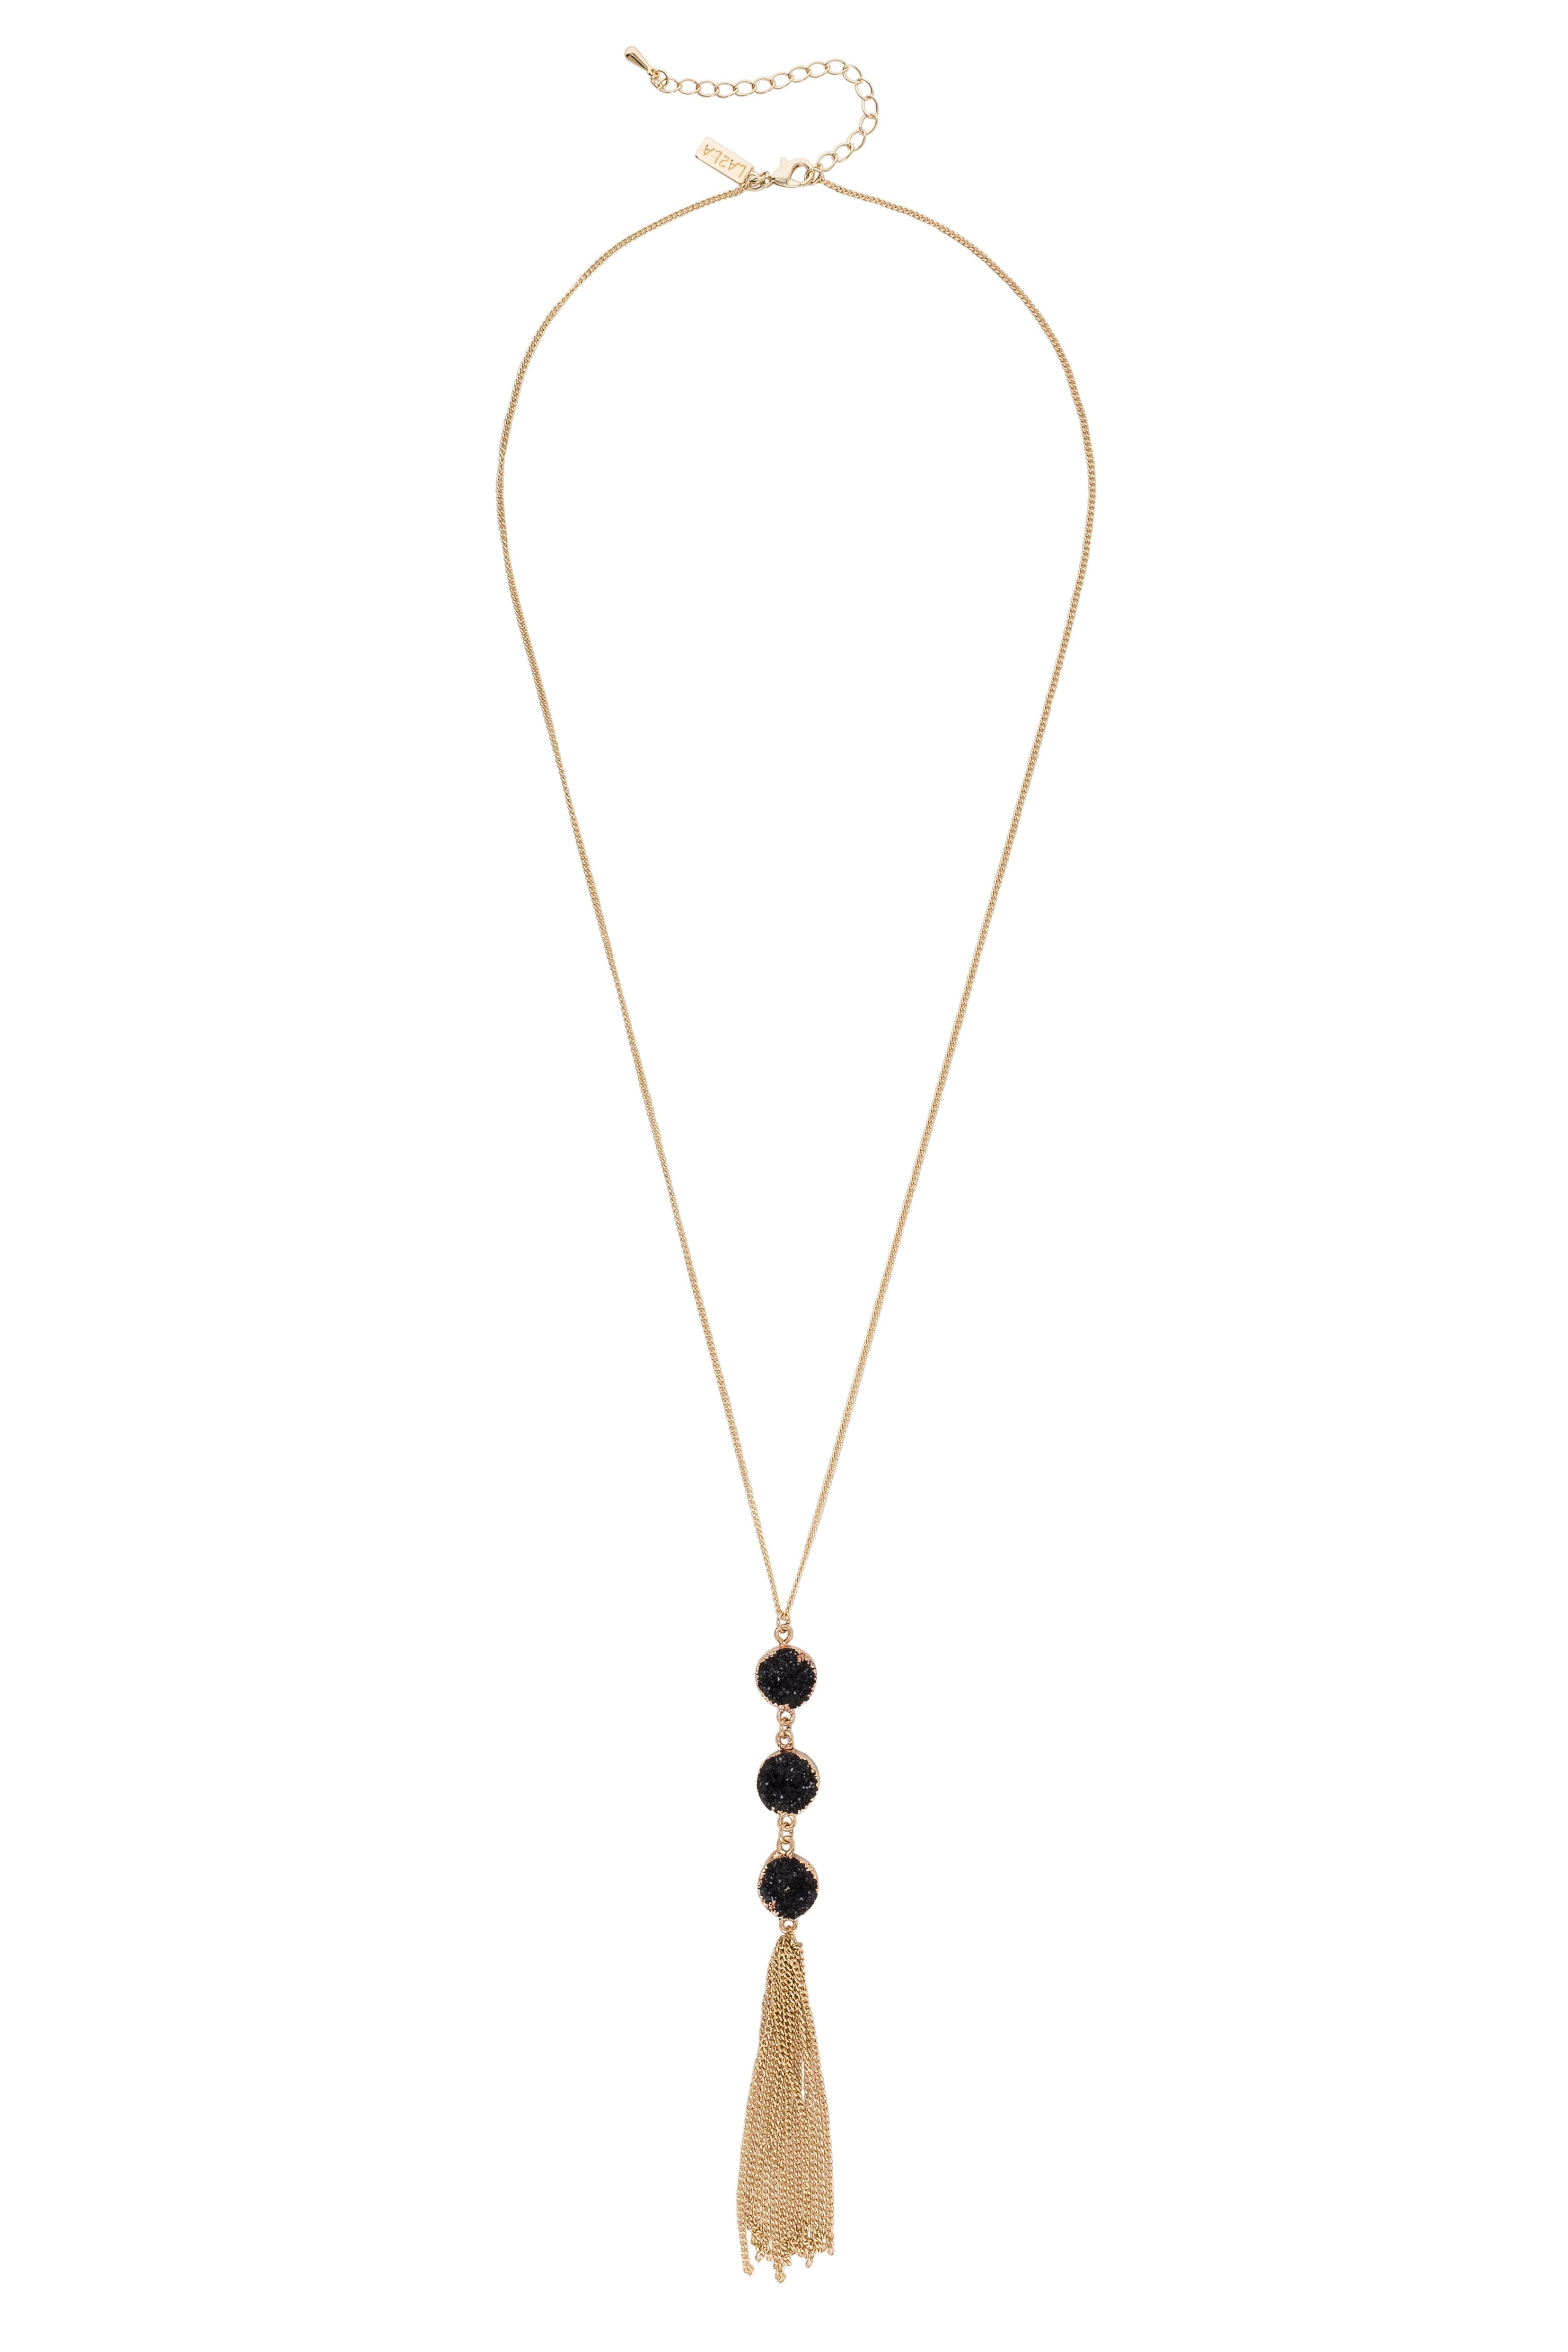 Three Black Druzy Charm With Gold Tassel Necklace